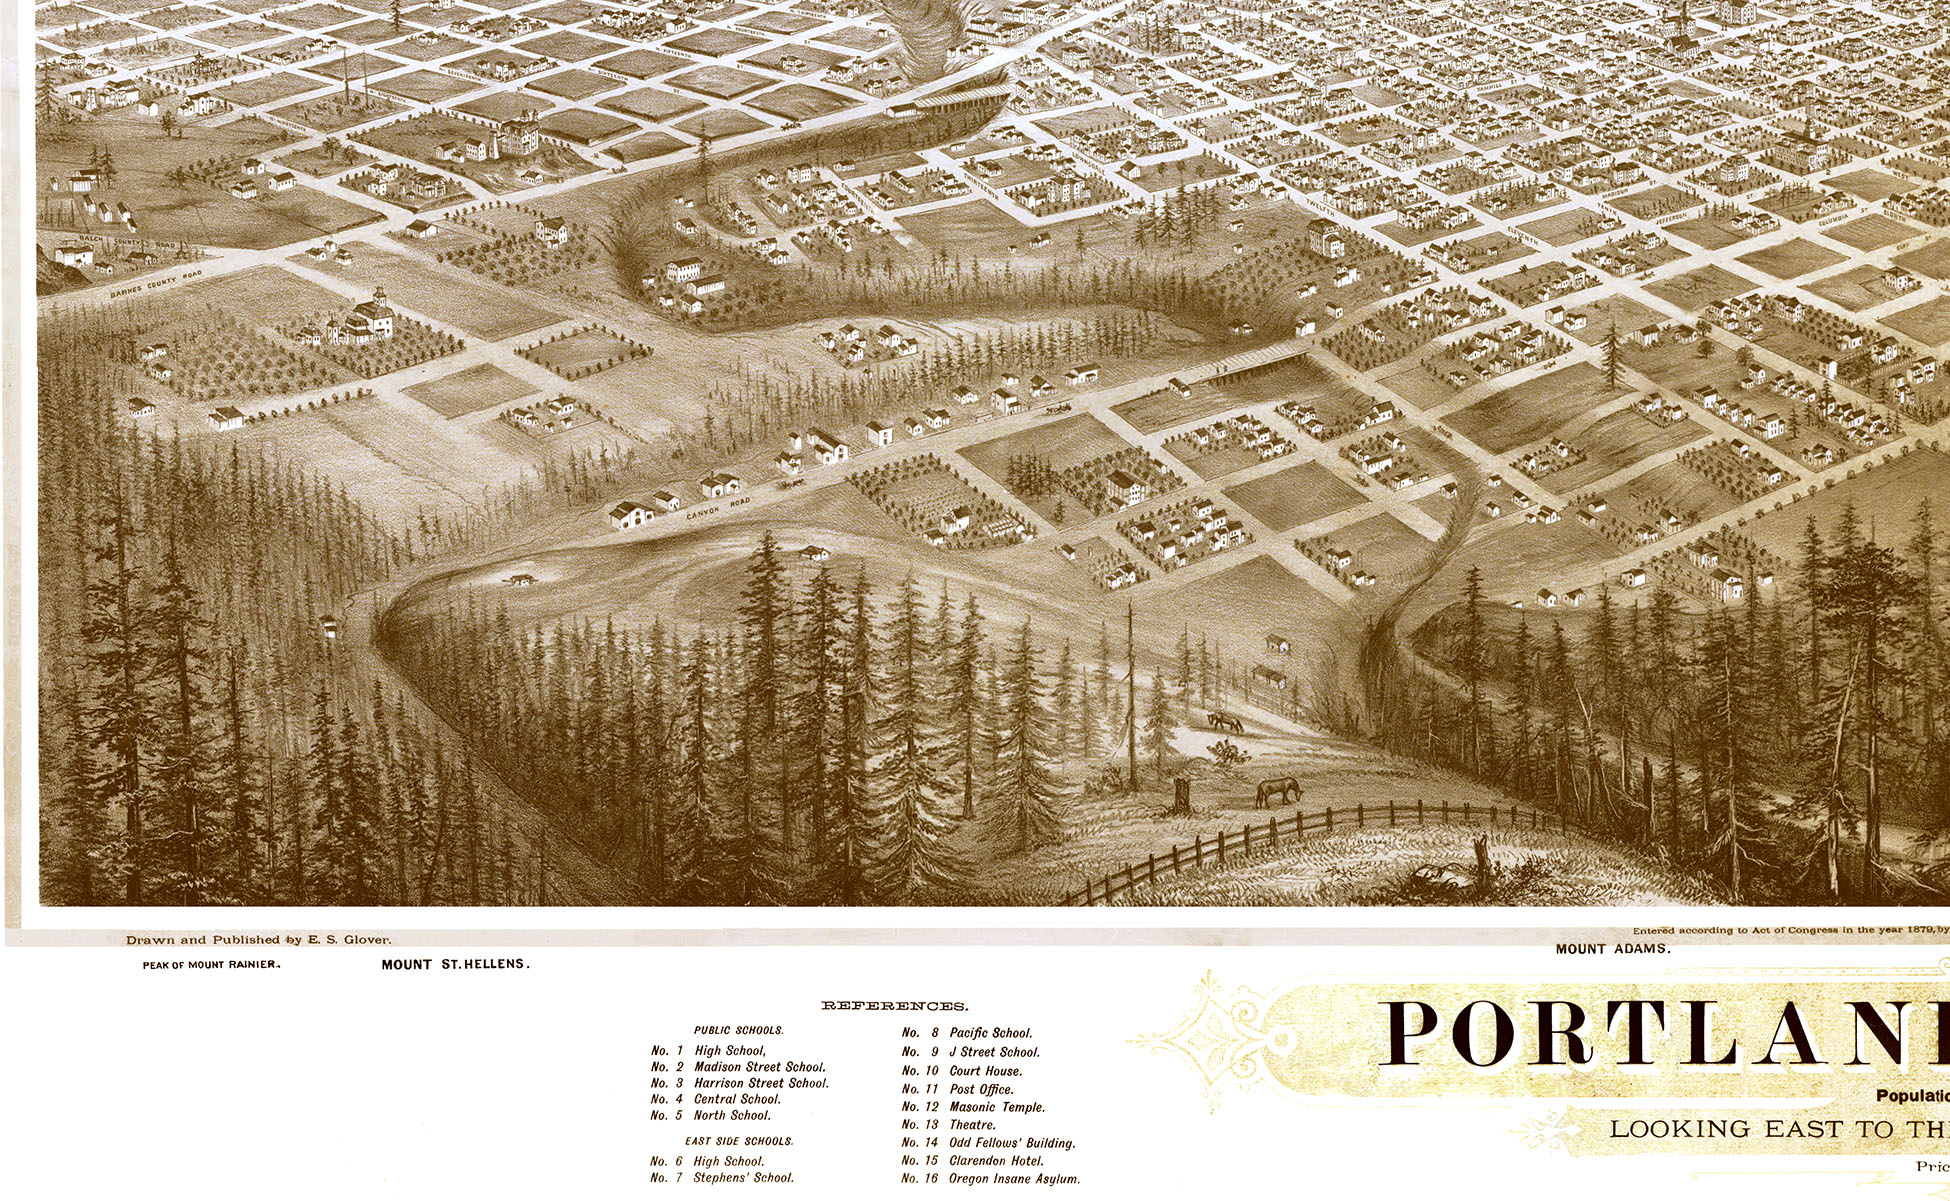 Portland, Oregon in 1879 - Bird's Eye View Map, Aerial Map, Panorama,  Vintage map, Antique map, Reproduction, History, Fine Art, Wall Art from  The Old